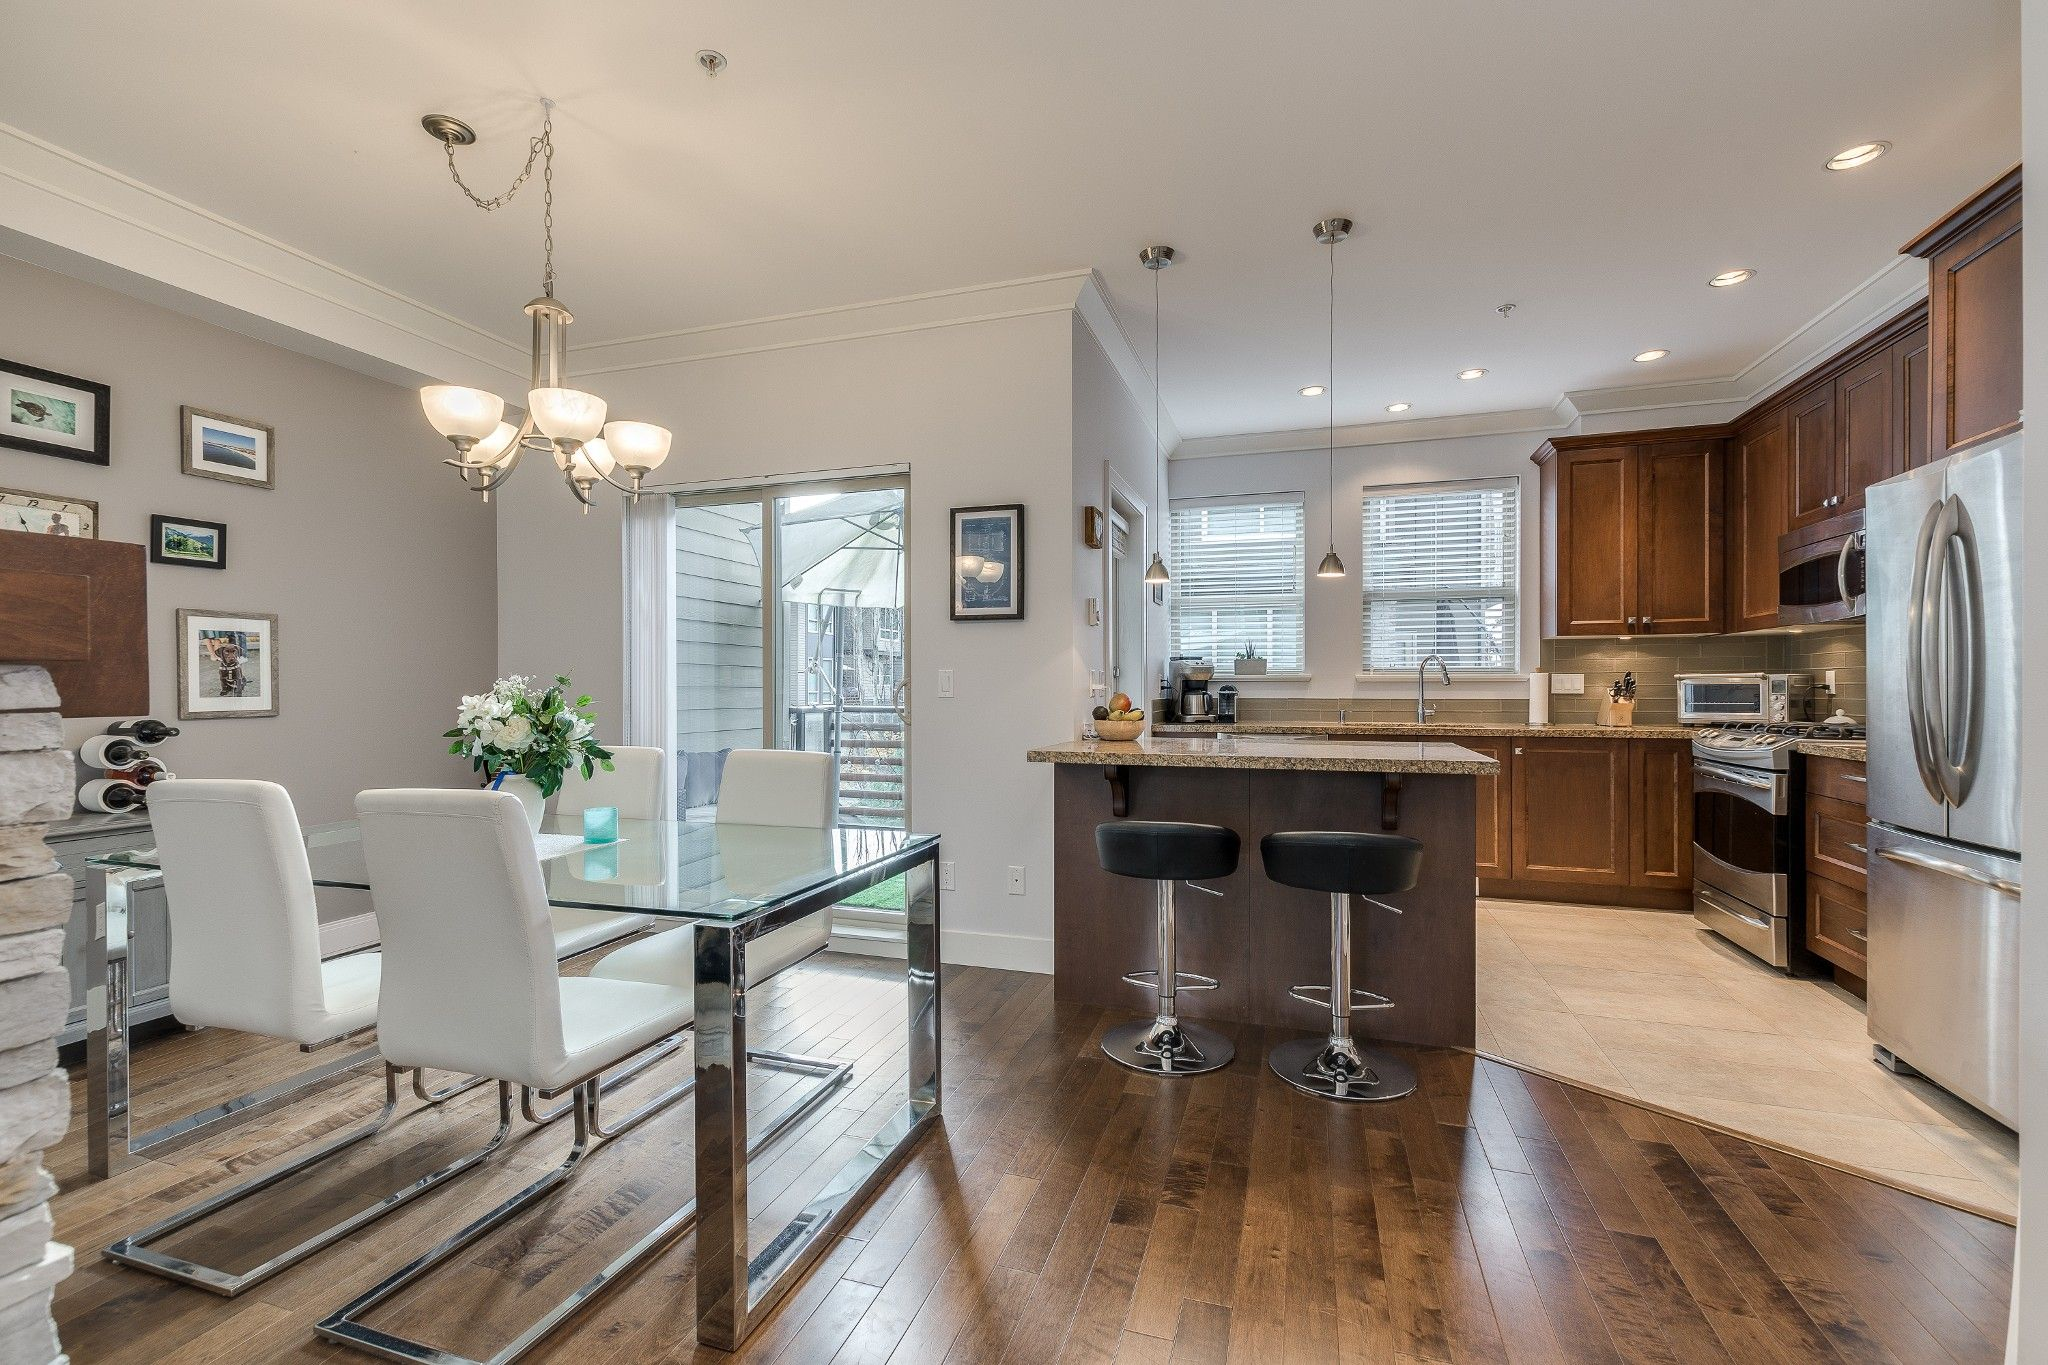 Photo 3: Photos: 24 897 Premier Street in : Lynnmour Townhouse for sale (North Vancouver)